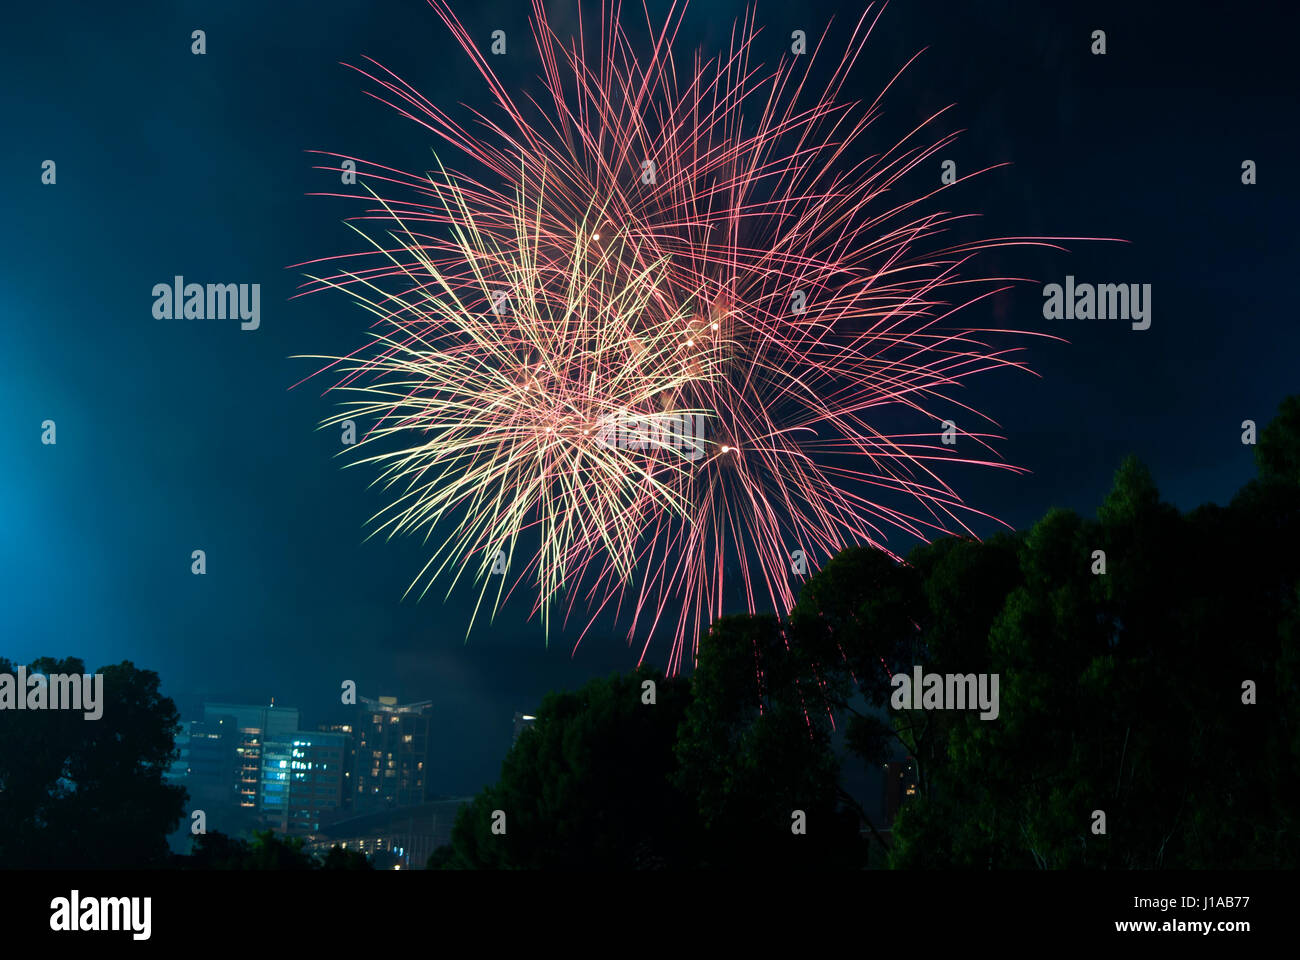 Fire works over the city of Adelaide's CBD, South Australia on New Years Eve from Montefiore Hill by the Lights - Stock Image